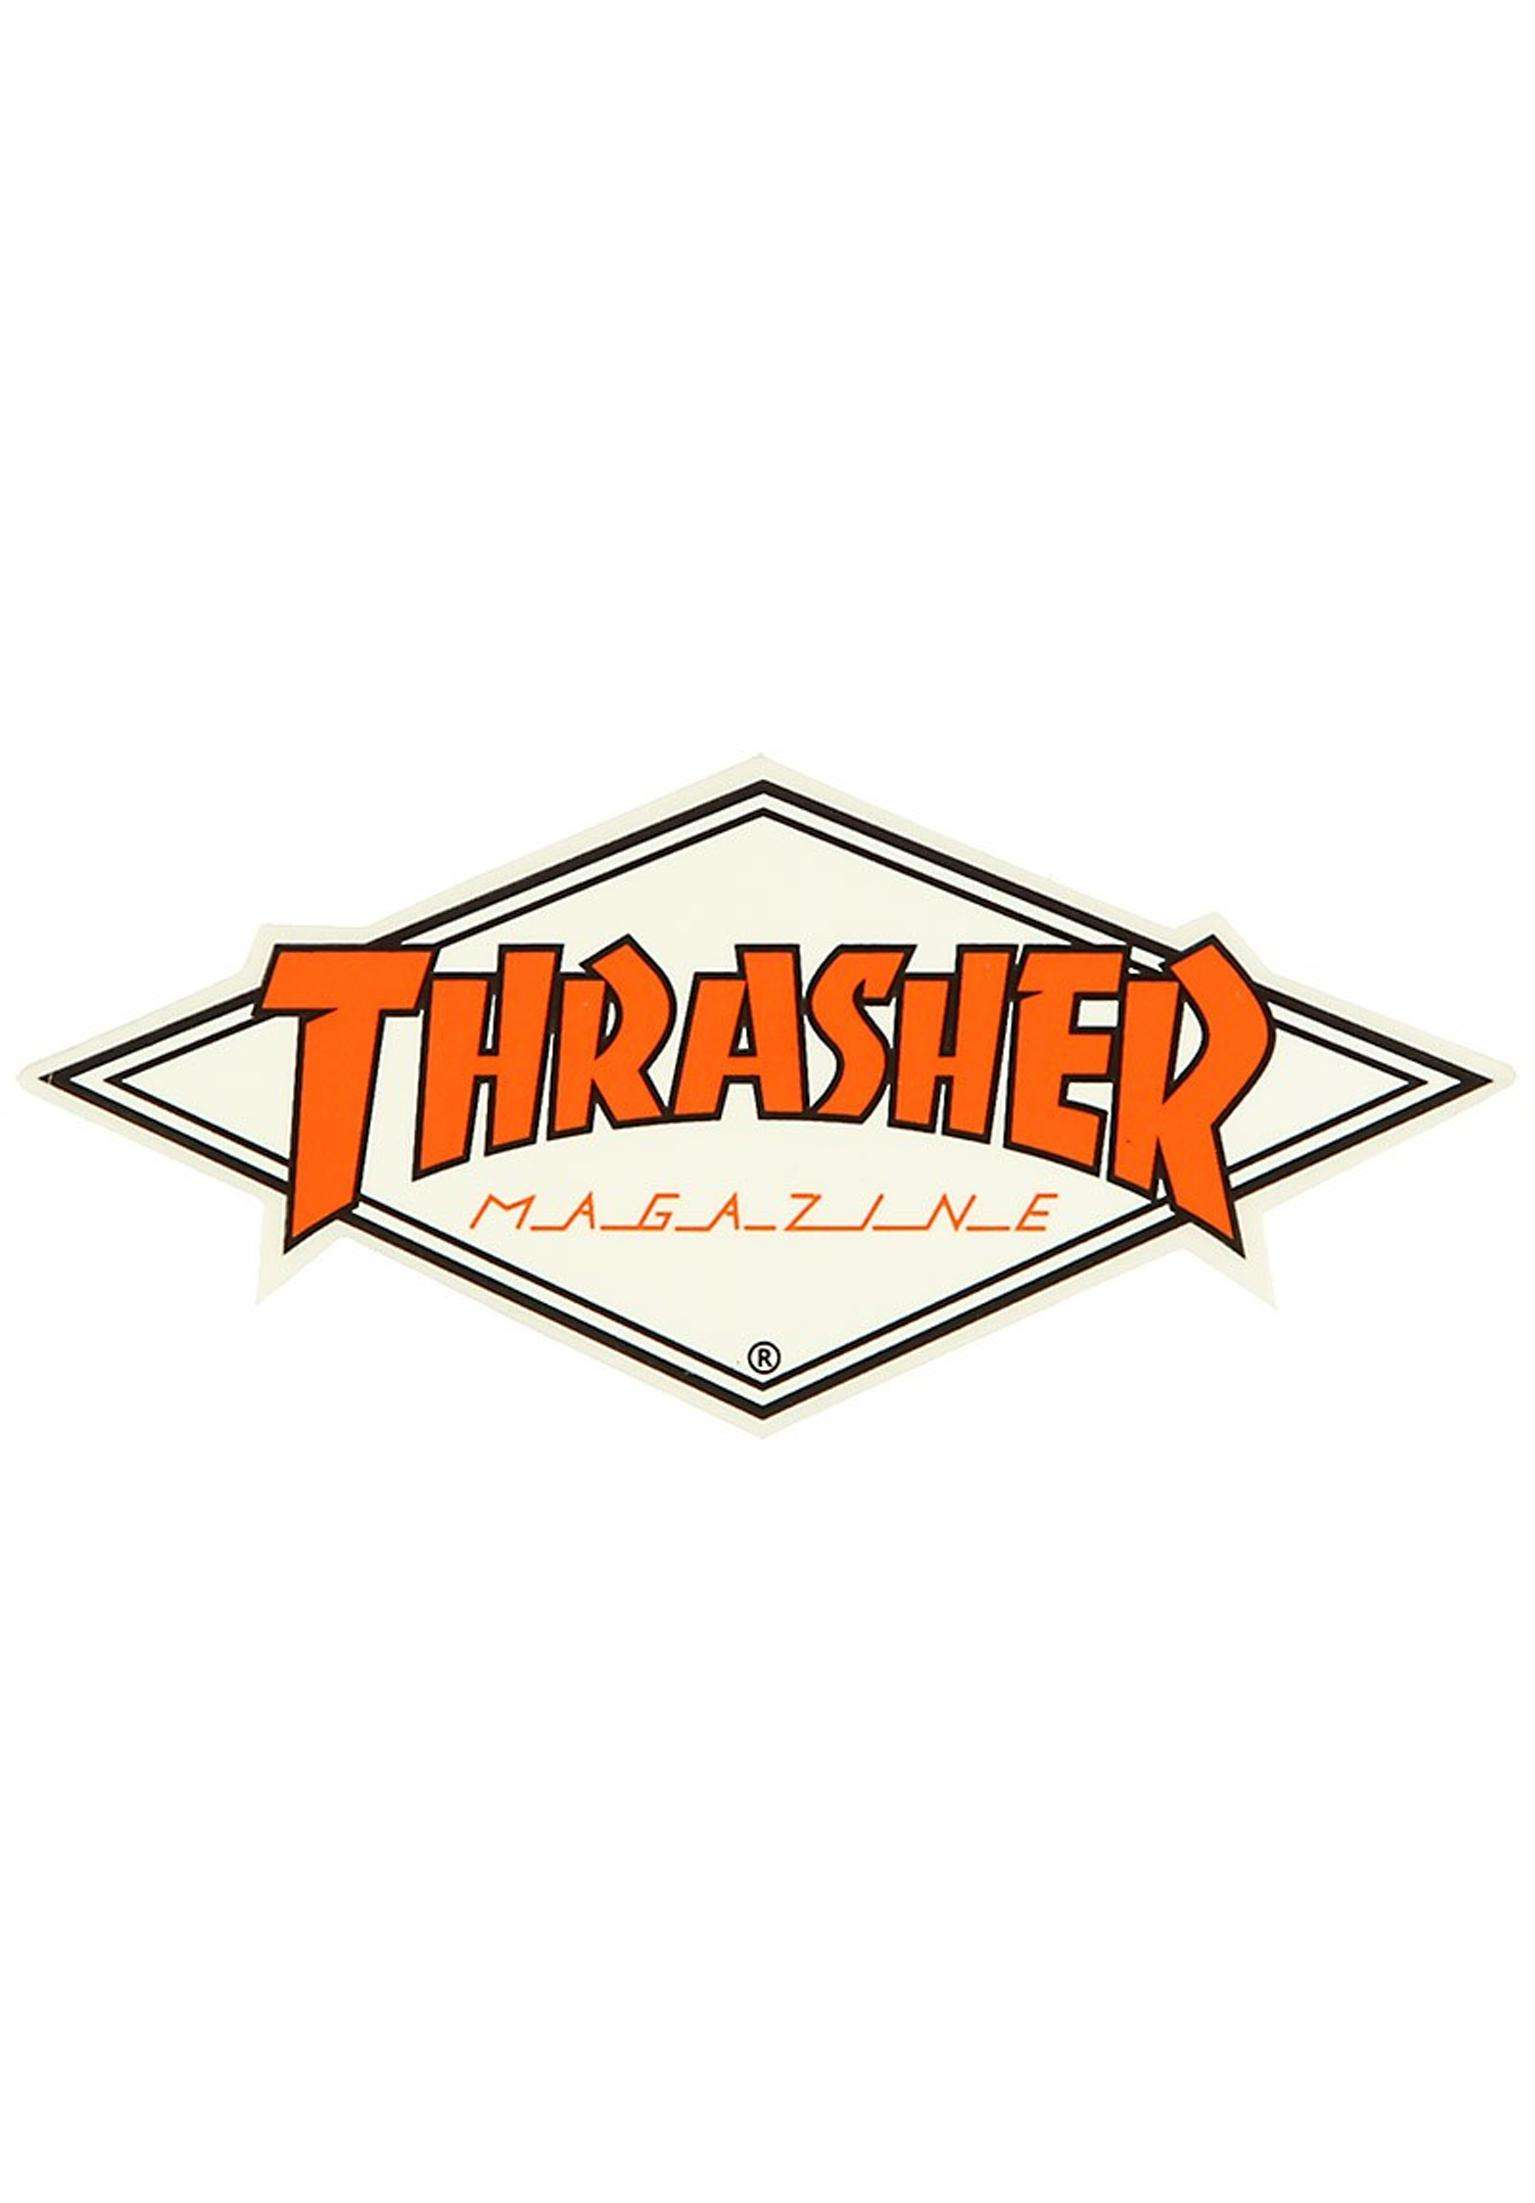 Thrasher Diamond Logo Sticker.